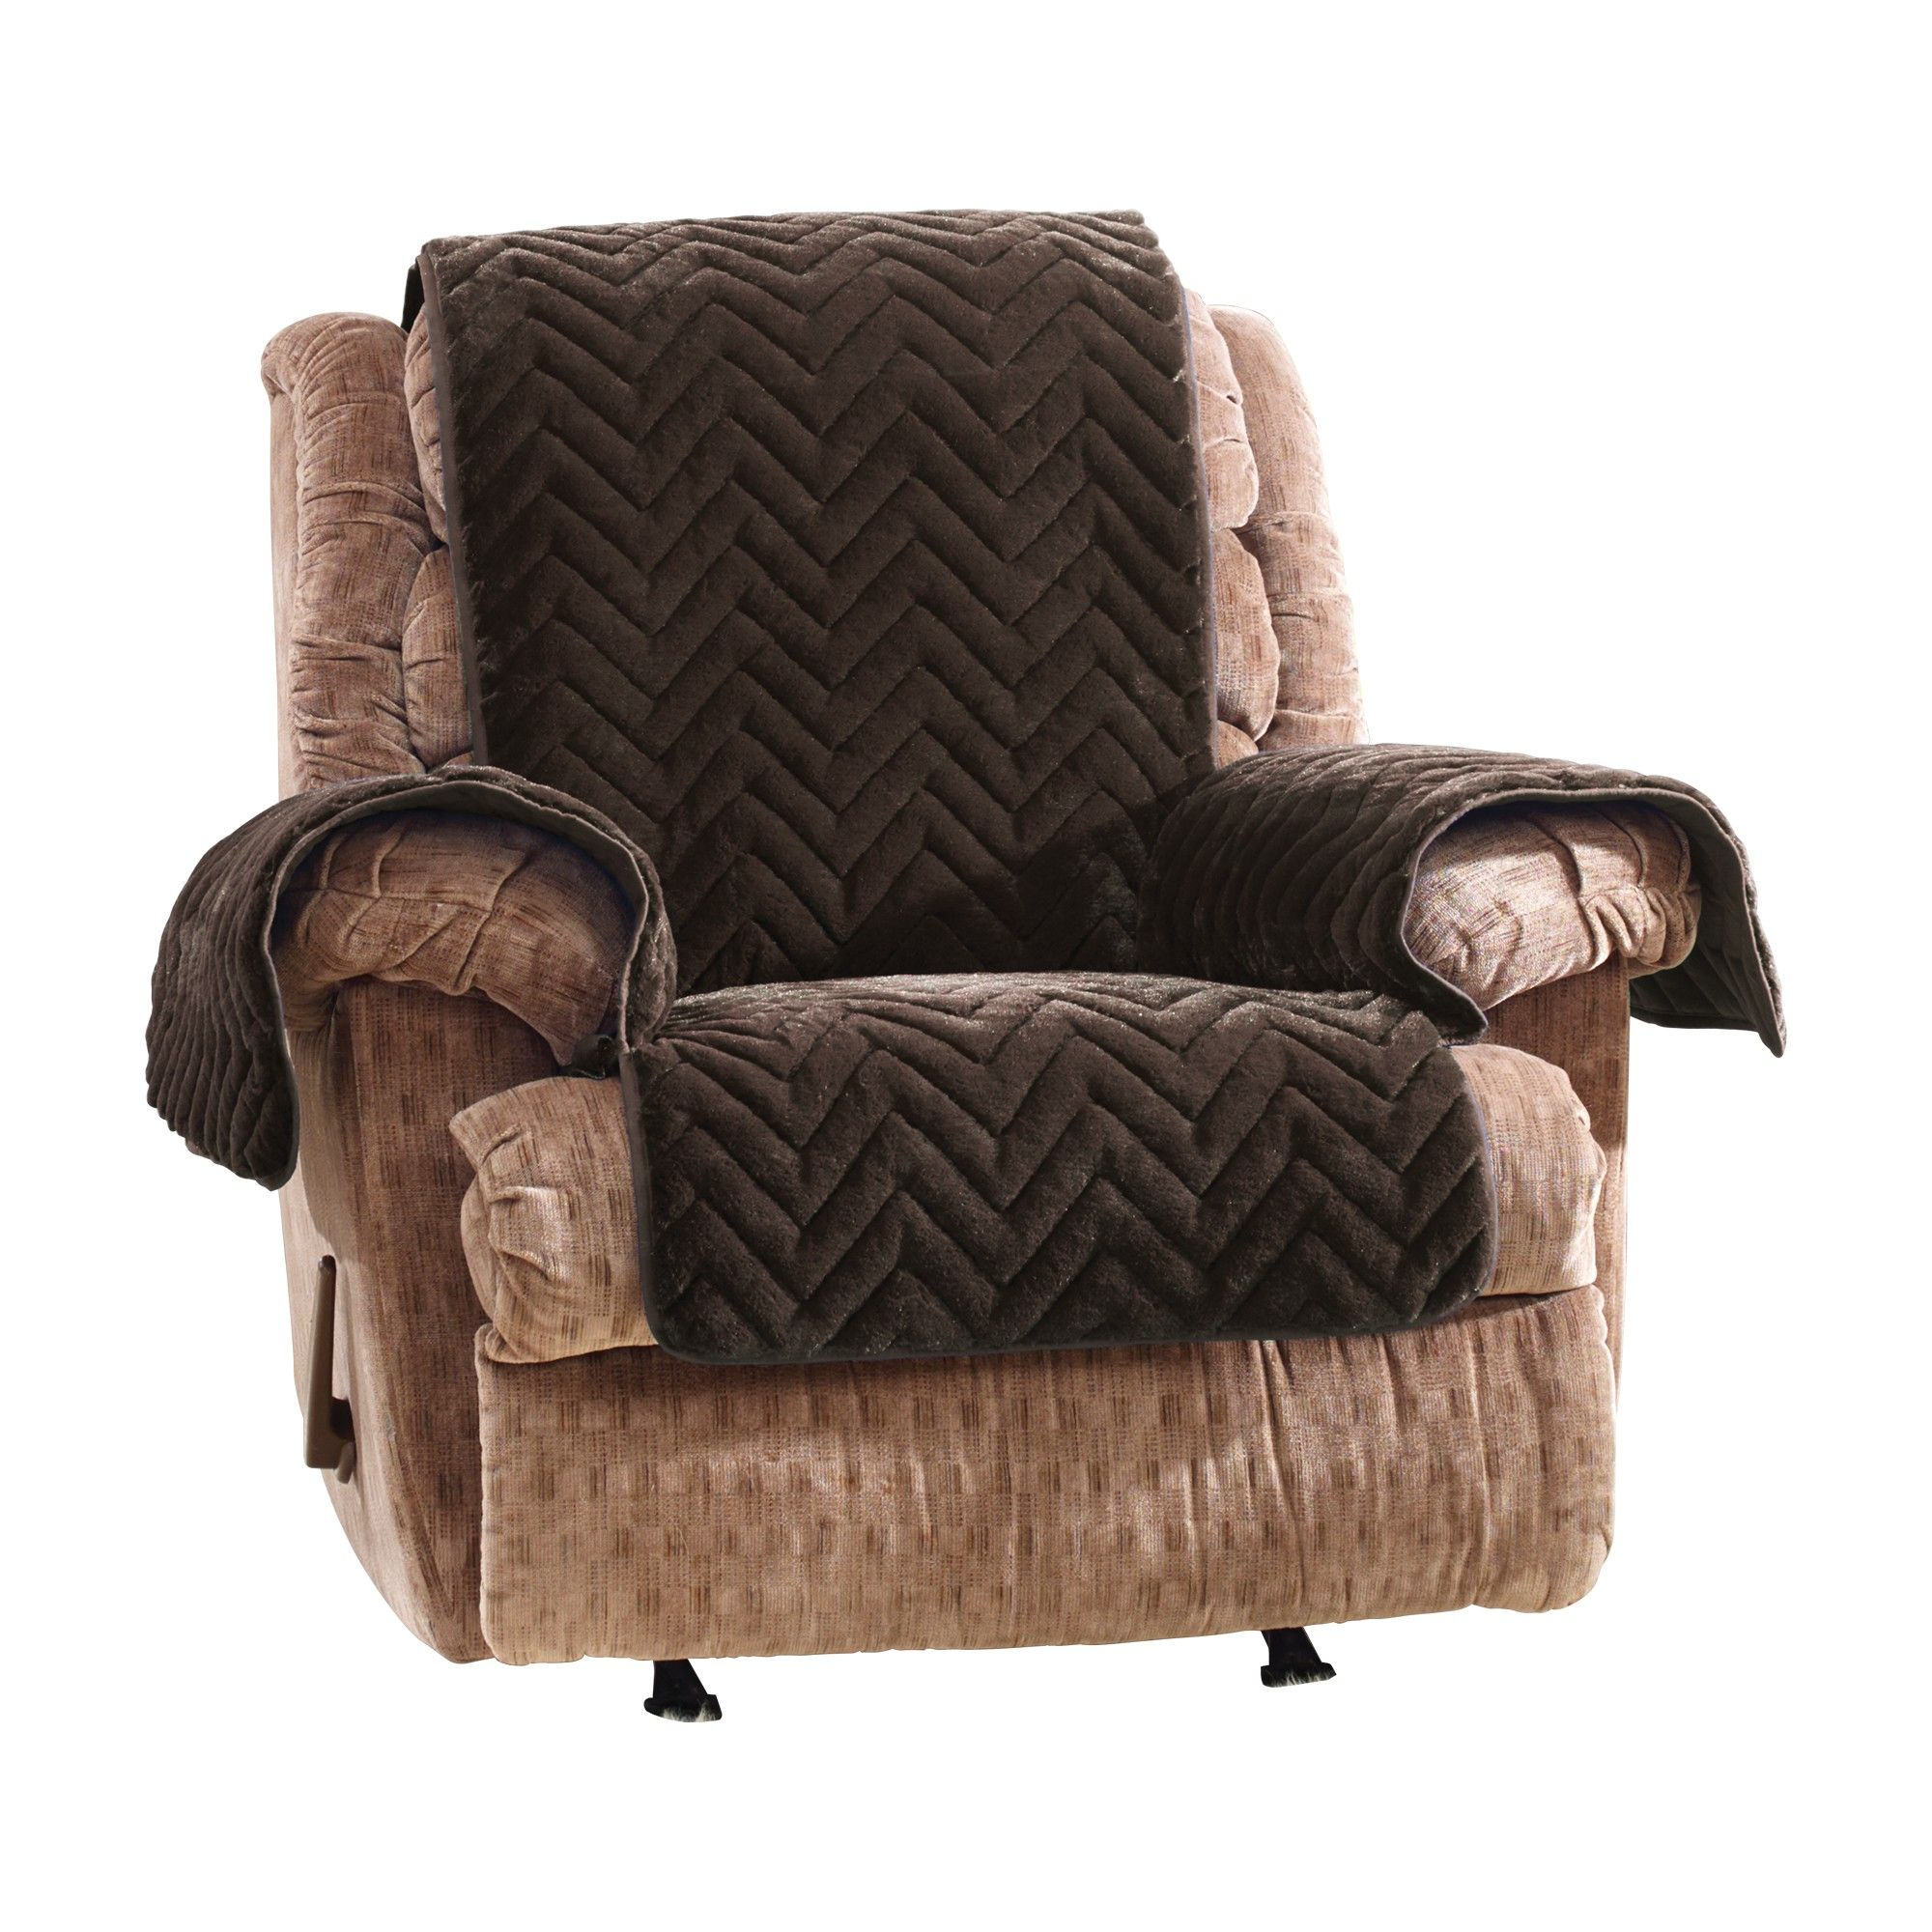 modern sure leather black for cool fit covers images chair size full reclining inspirations slipcover of awesome fitted dual cheap slipcovers recliner furniture sensational sofa recliners double